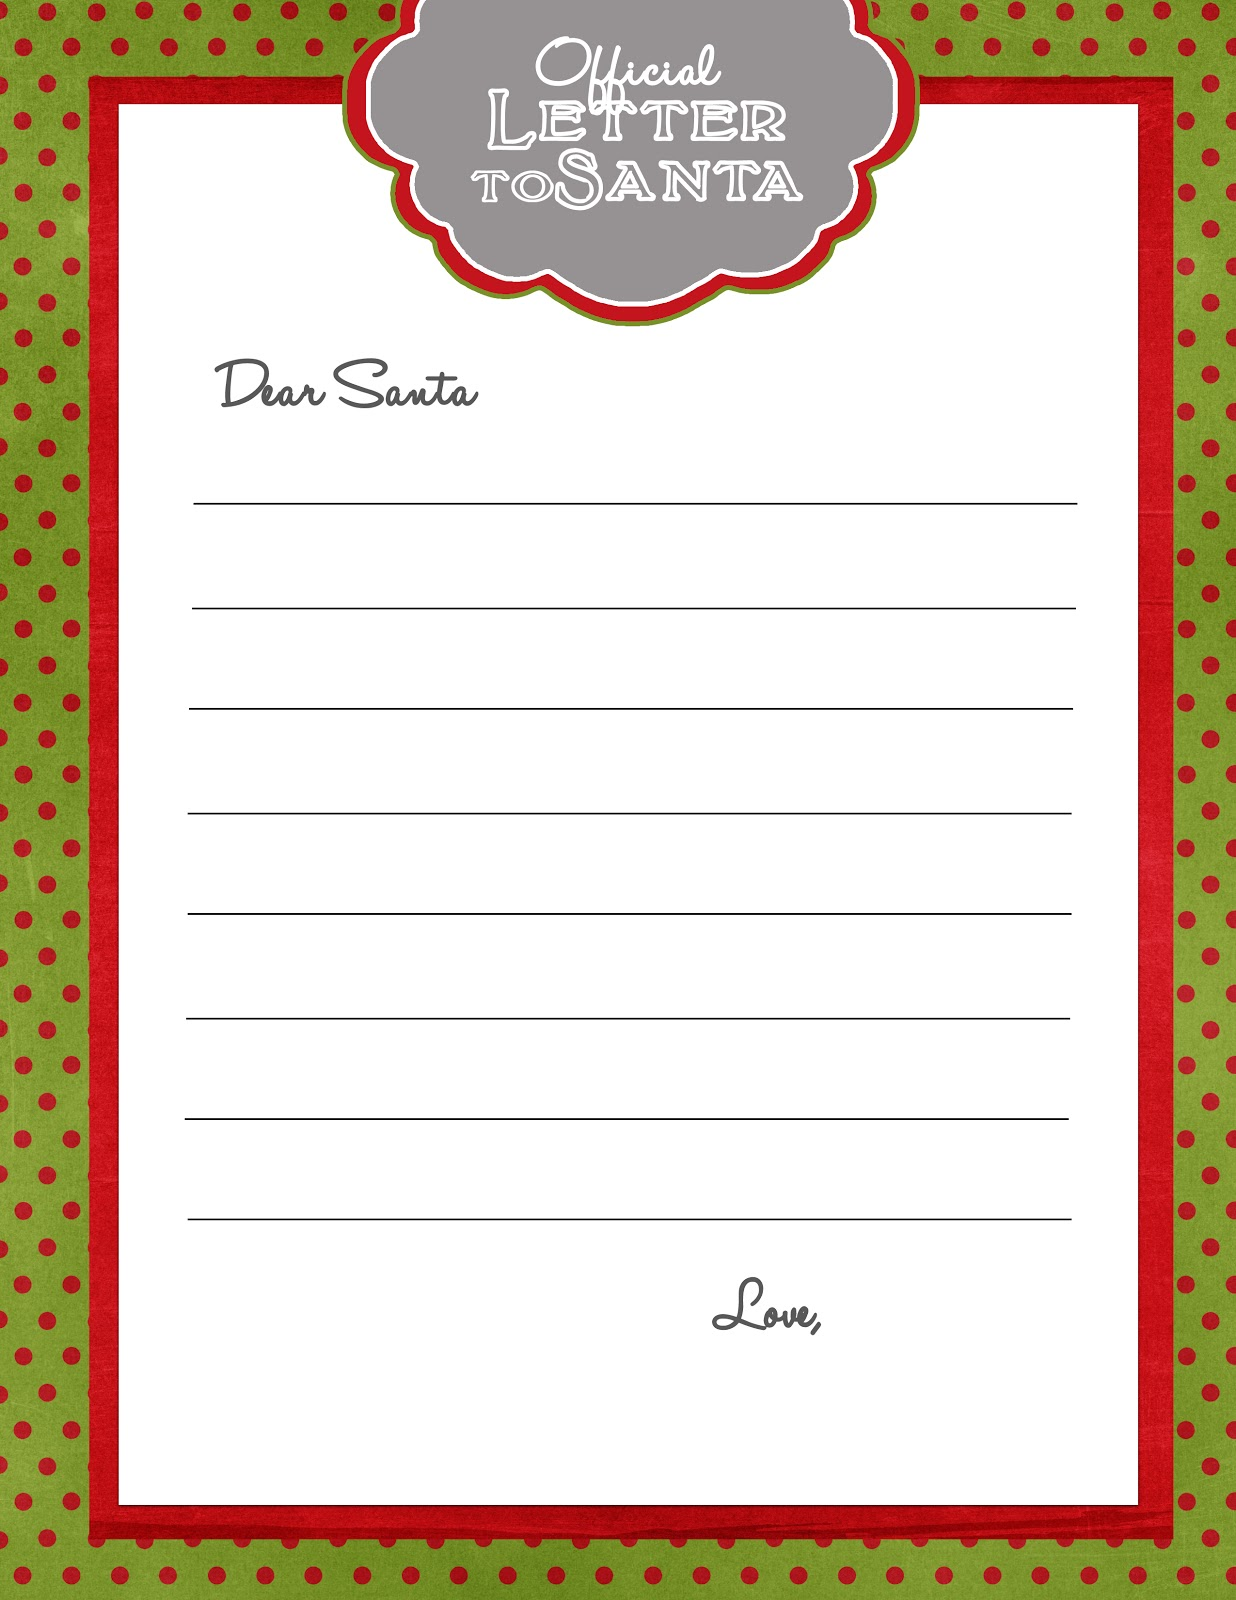 Letter Stationery Templates  Microsoft Word Santa Letter Template